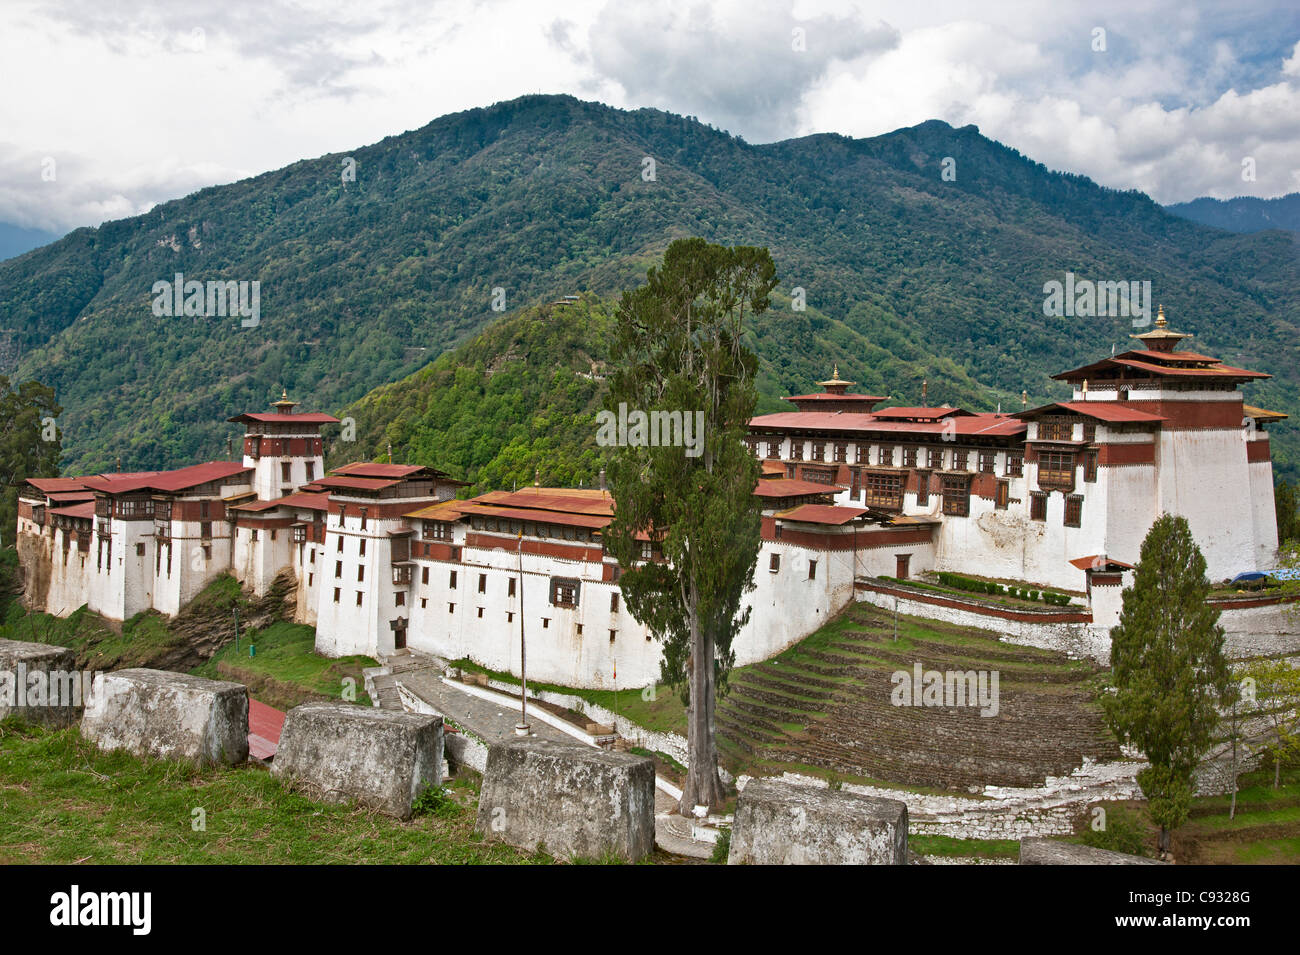 The massive Trongsa Dzong, or fortress, was built in the 1640s. - Stock Image